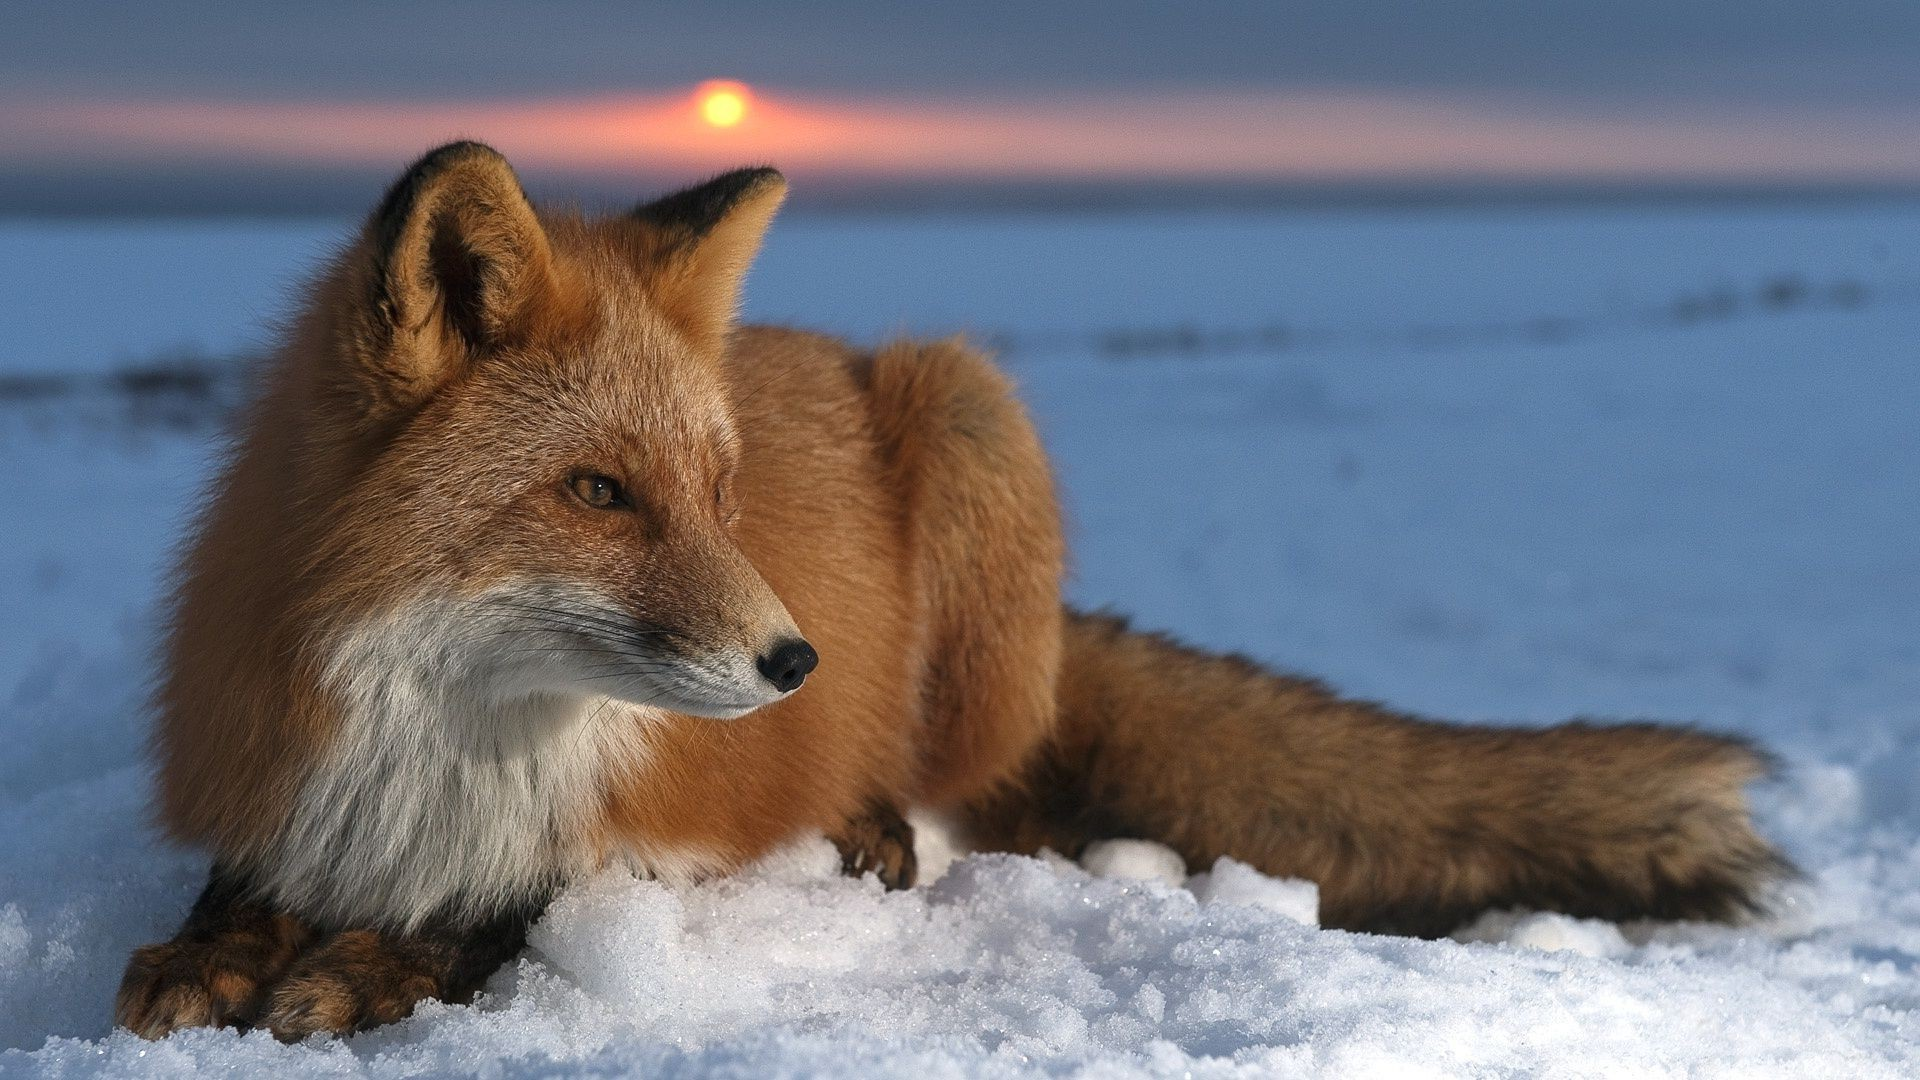 fox mammal wildlife winter snow canine outdoors nature animal fur predator frosty